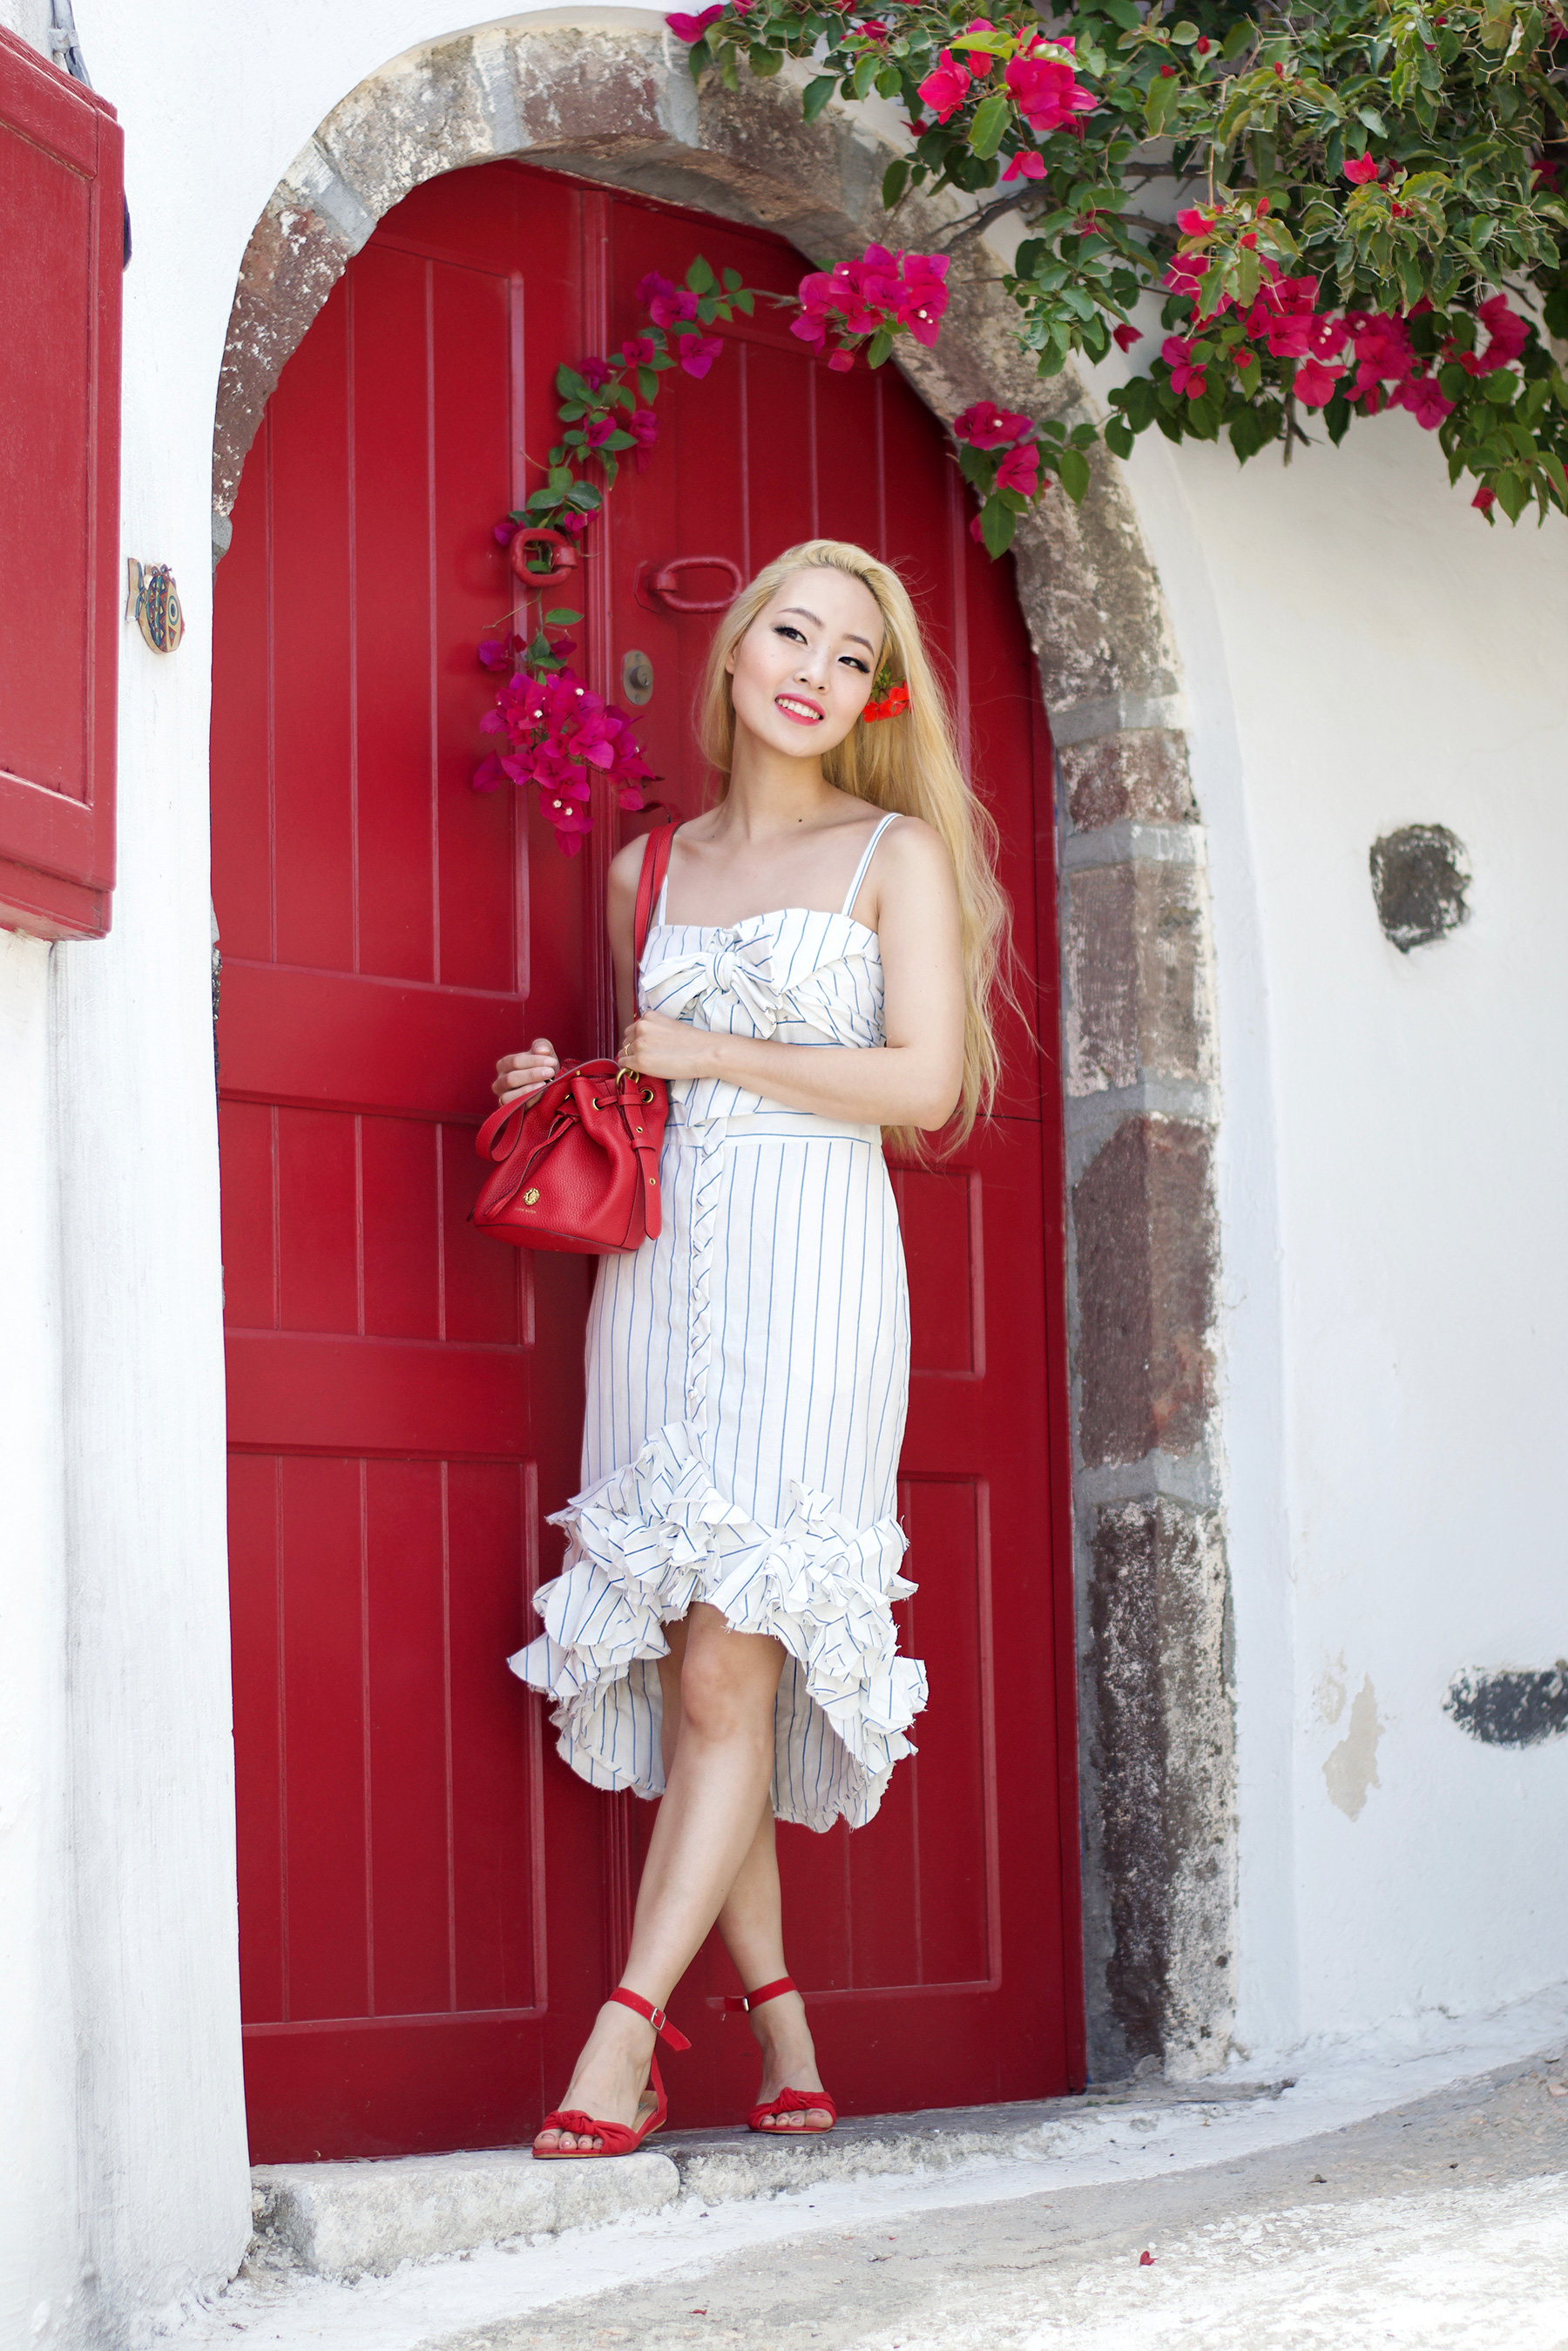 In the sixth and last look from my trip I created a look inspired by the blue and white architecture of Santorini, and the red bougainvillea blooming everywhere! I styled a gorgeous #summerdress with blue and white stripes by Johanna Ortiz, and accentuated it with pops of red accessories. | #ontheblog | #SantoriniFashion | #travelSantorini | #Greece | #summerfashion | #traveloutfit | #JohannaOrtiz | #bucketbag | #stripedress |